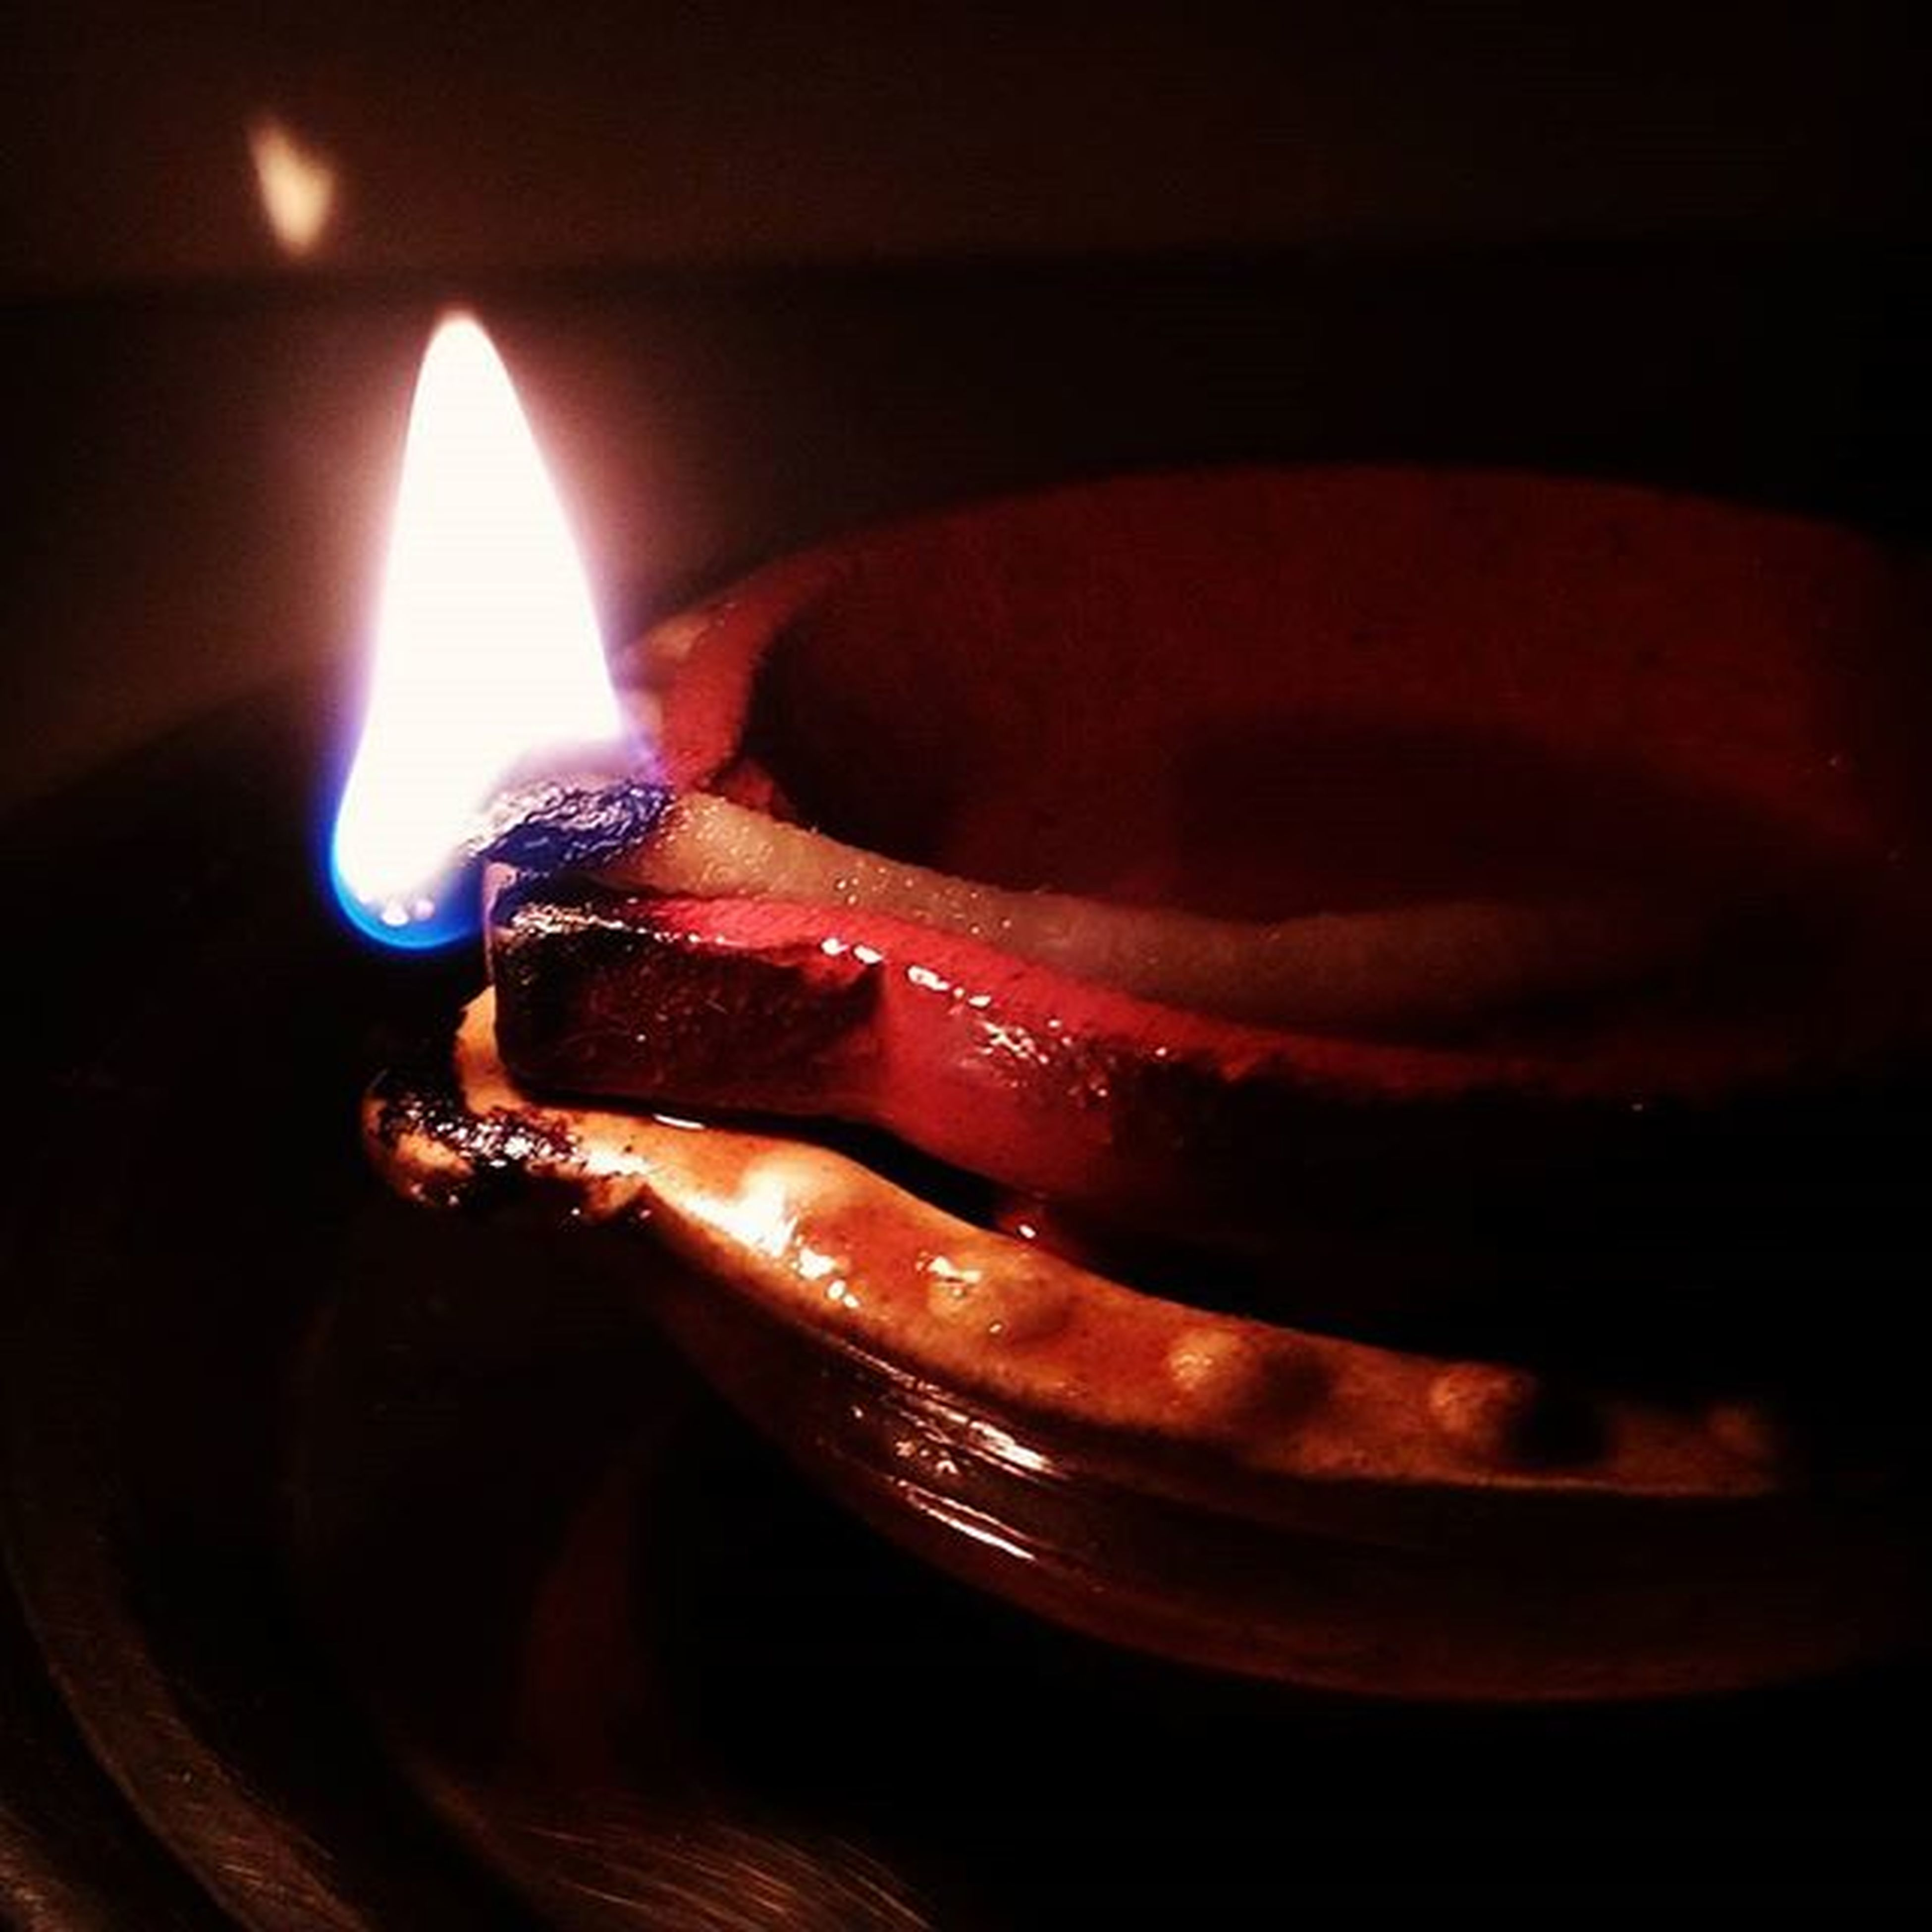 indoors, burning, flame, fire - natural phenomenon, heat - temperature, candle, illuminated, close-up, glowing, still life, lit, red, night, fire, candlelight, light - natural phenomenon, black background, dark, no people, selective focus